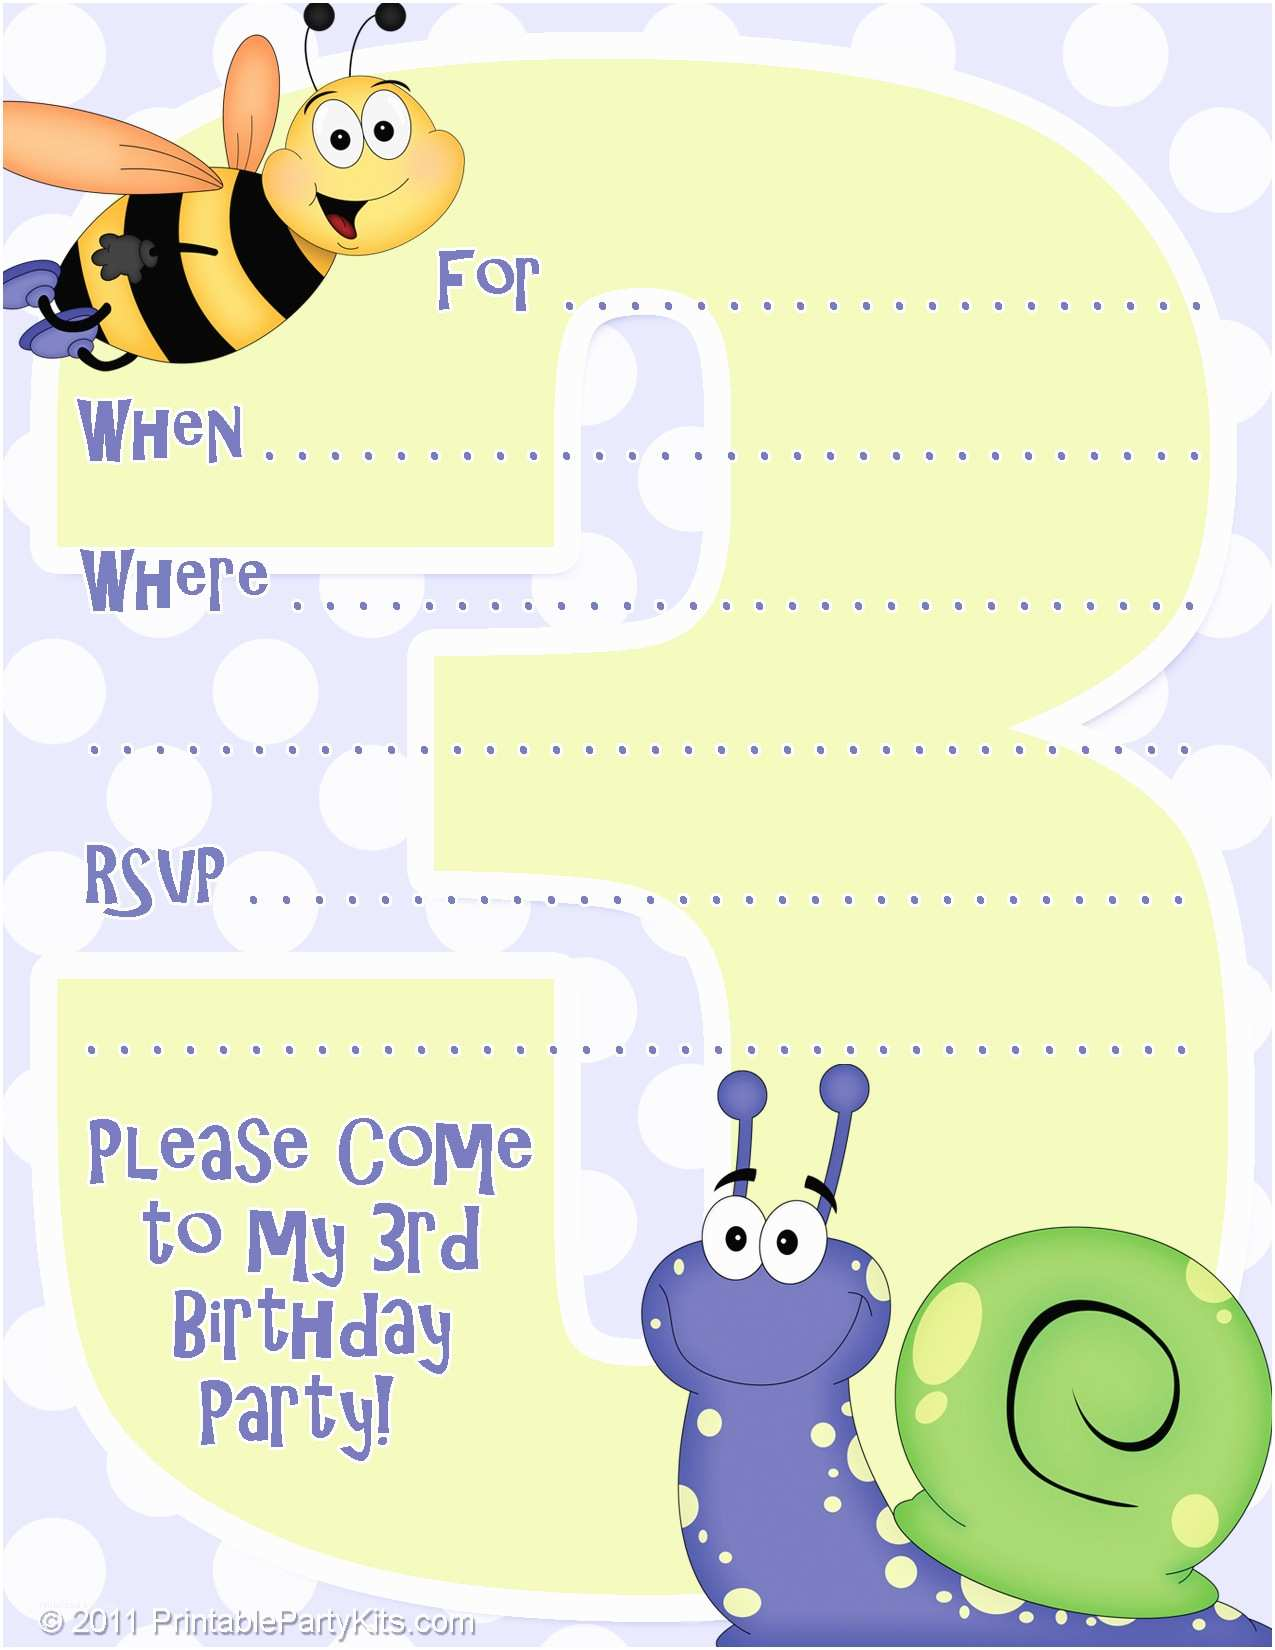 Birthday Party Invitations Free Printable Birthday Party Invitations